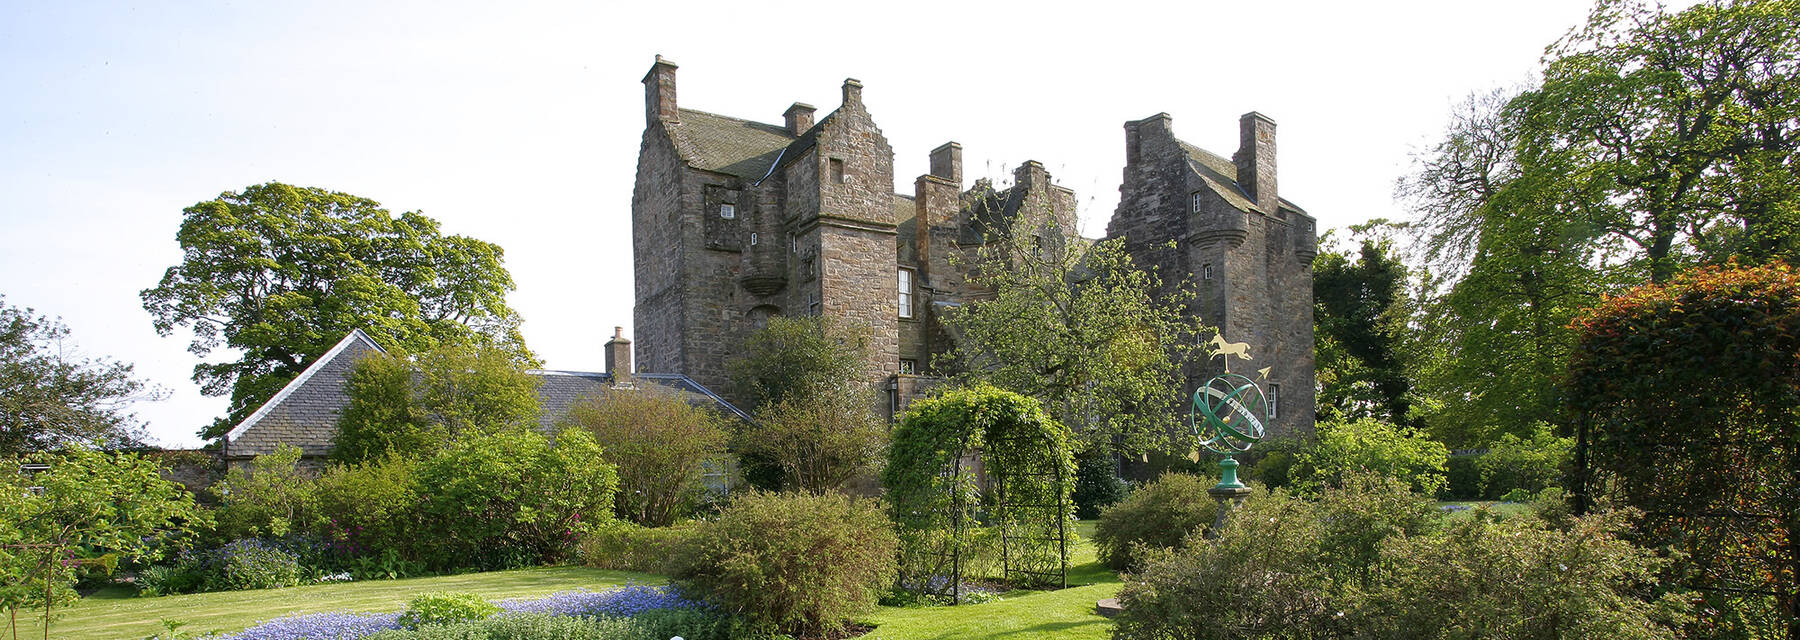 A view of Kellie Castle with its towers and chimneys, seen from a colourful garden. The bed in the foreground is filled with small blue flowers, mirroring the sky!